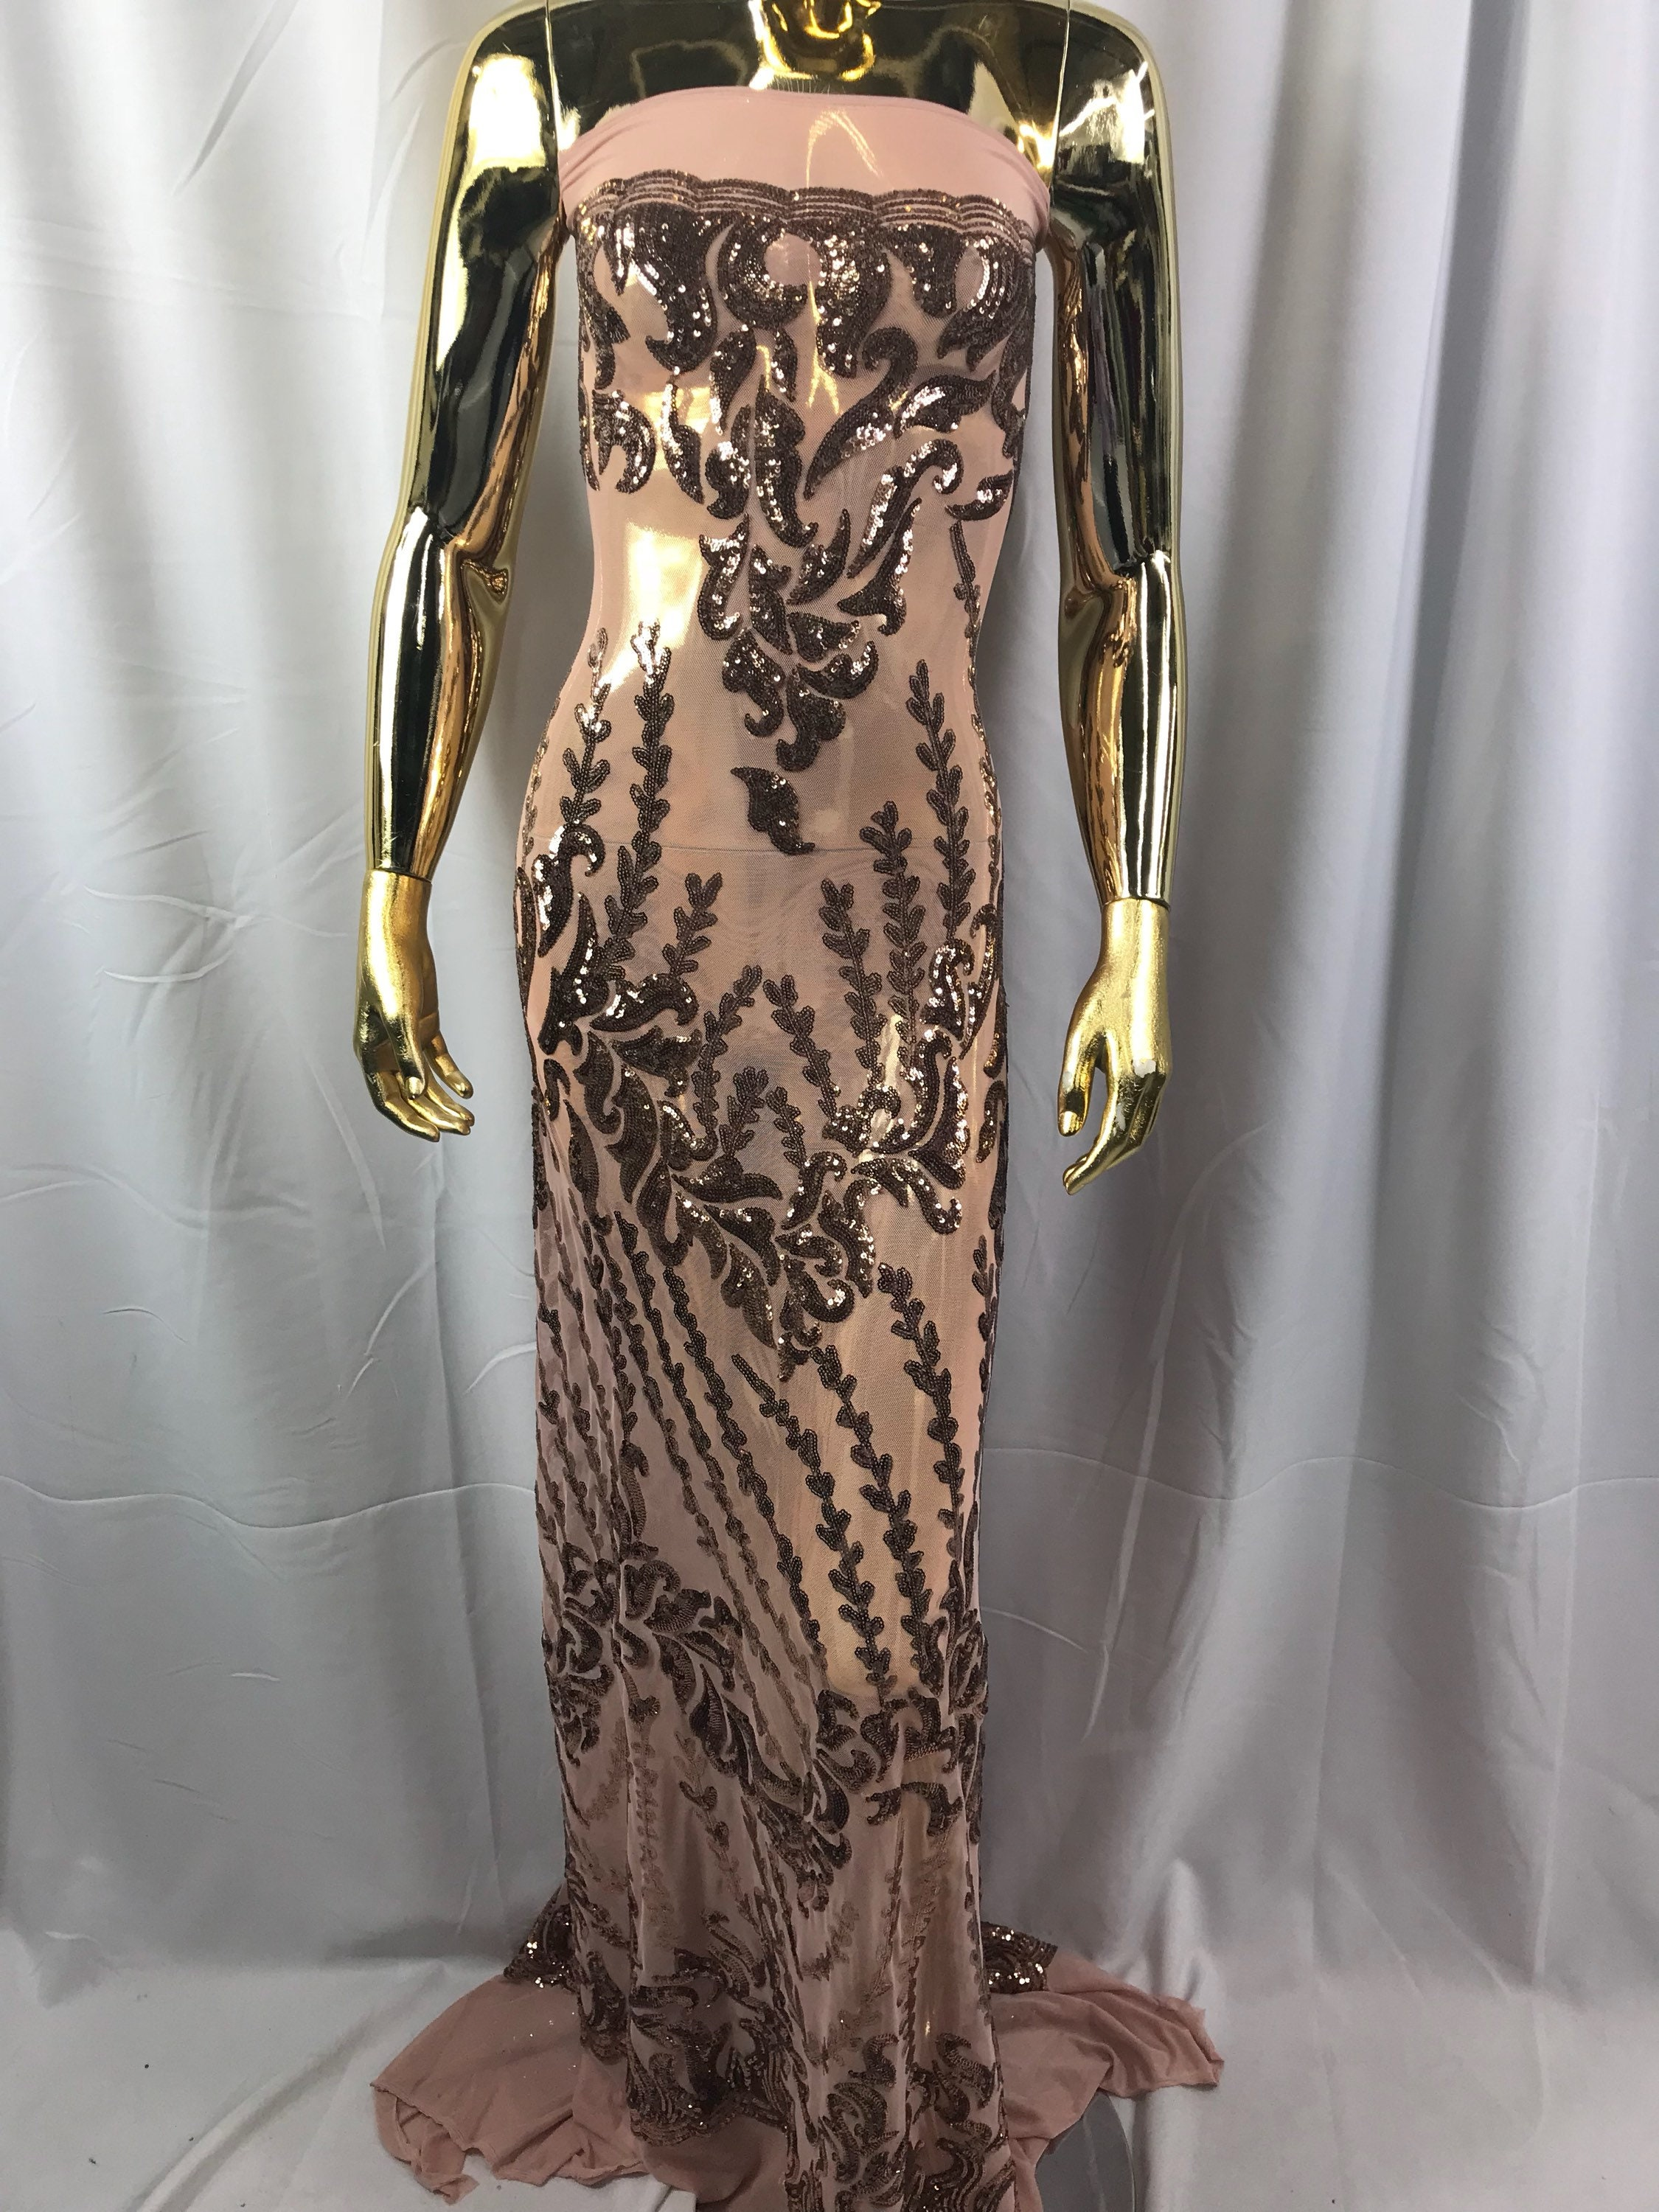 4 Way Stretch Fabric Sequins By The Yard Rose Gold Embroidered Mesh Dress Top Fashion For Bridal Veil Wedding Lace Decoration